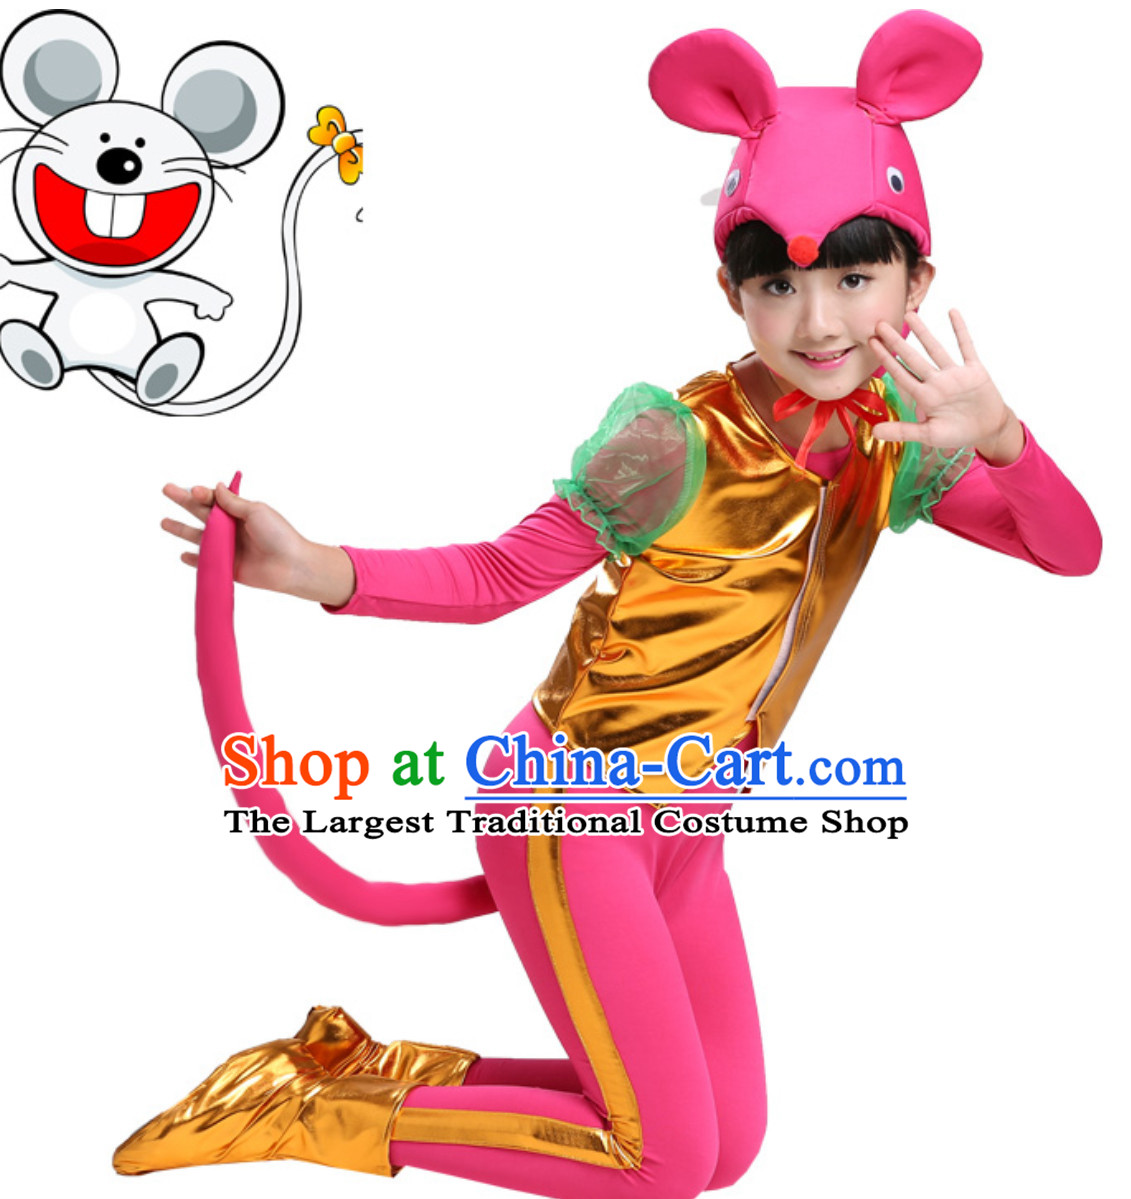 Chinese Lunar New Year Celebration Rat Year Mouse Dance Costume Complete Set